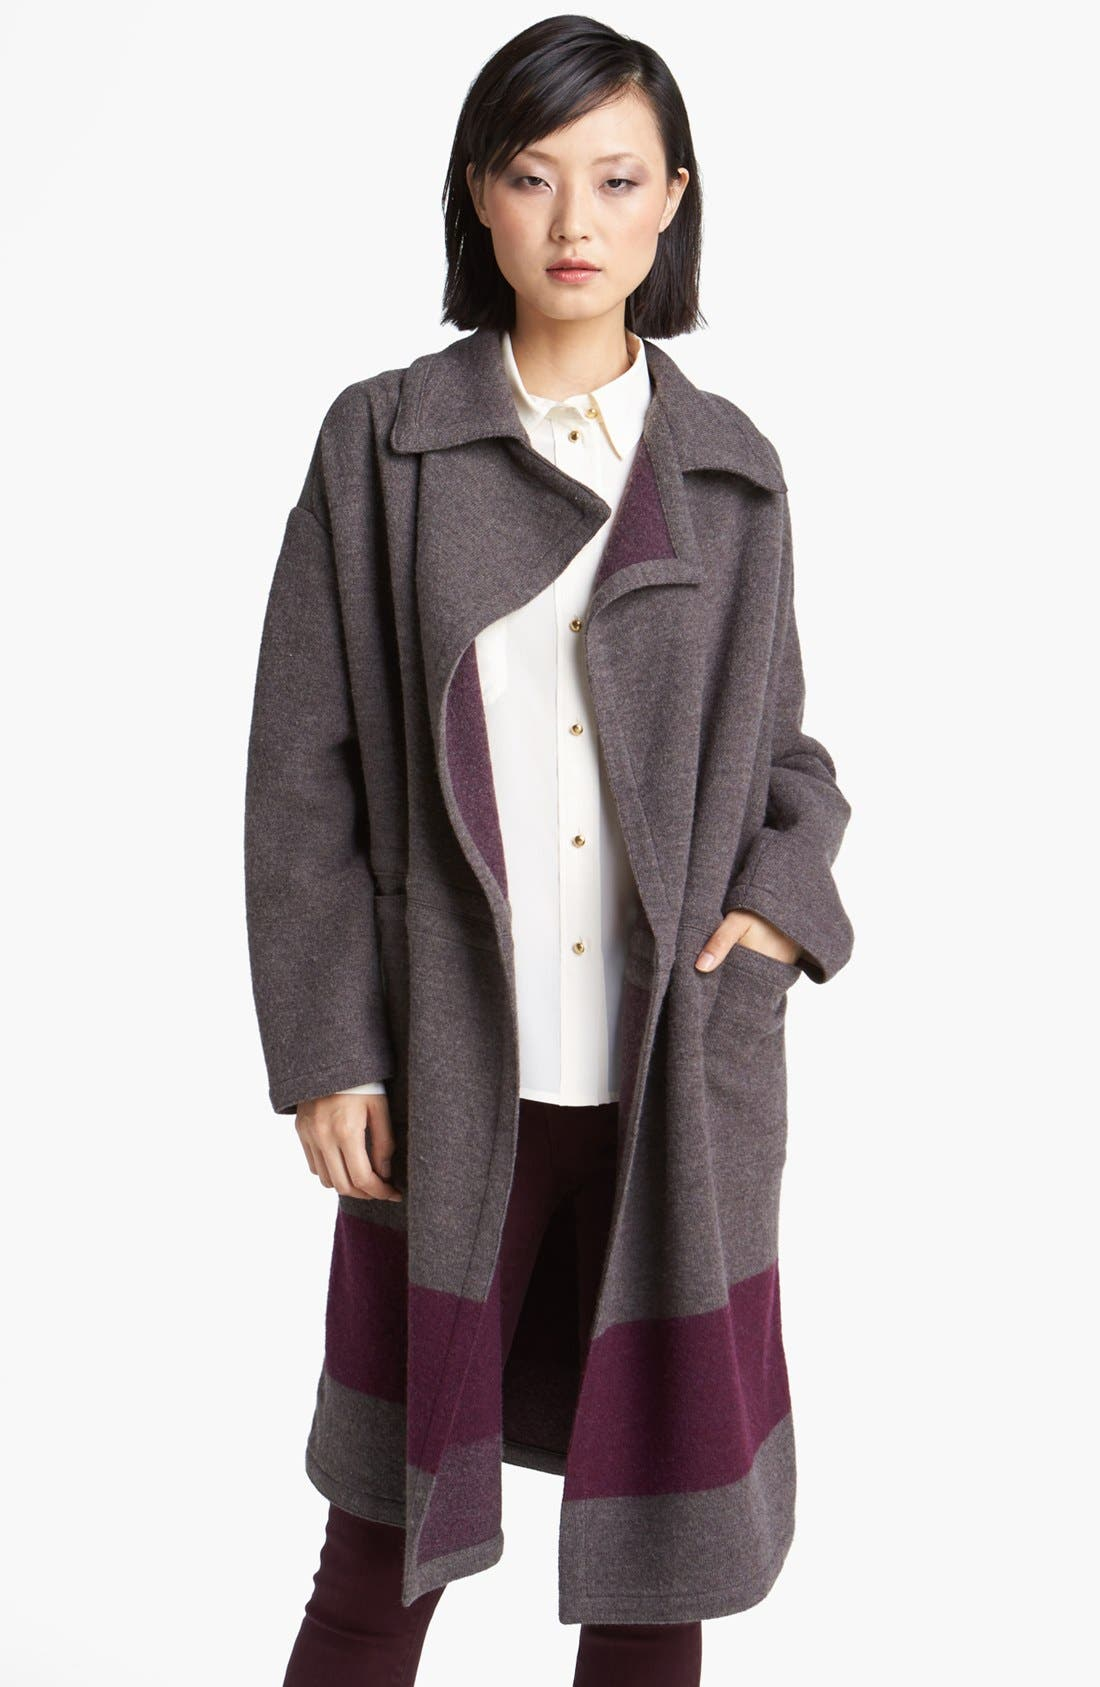 Alternate Image 1 Selected - MARC BY MARC JACOBS 'Sam' Wool Sweater Coat